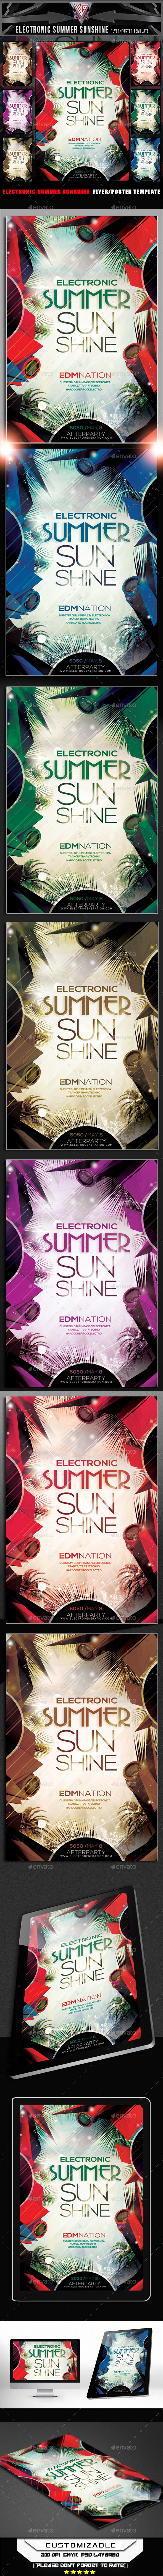 Electronic Summer Sunshine Flyer Template - Flyers Print Templates